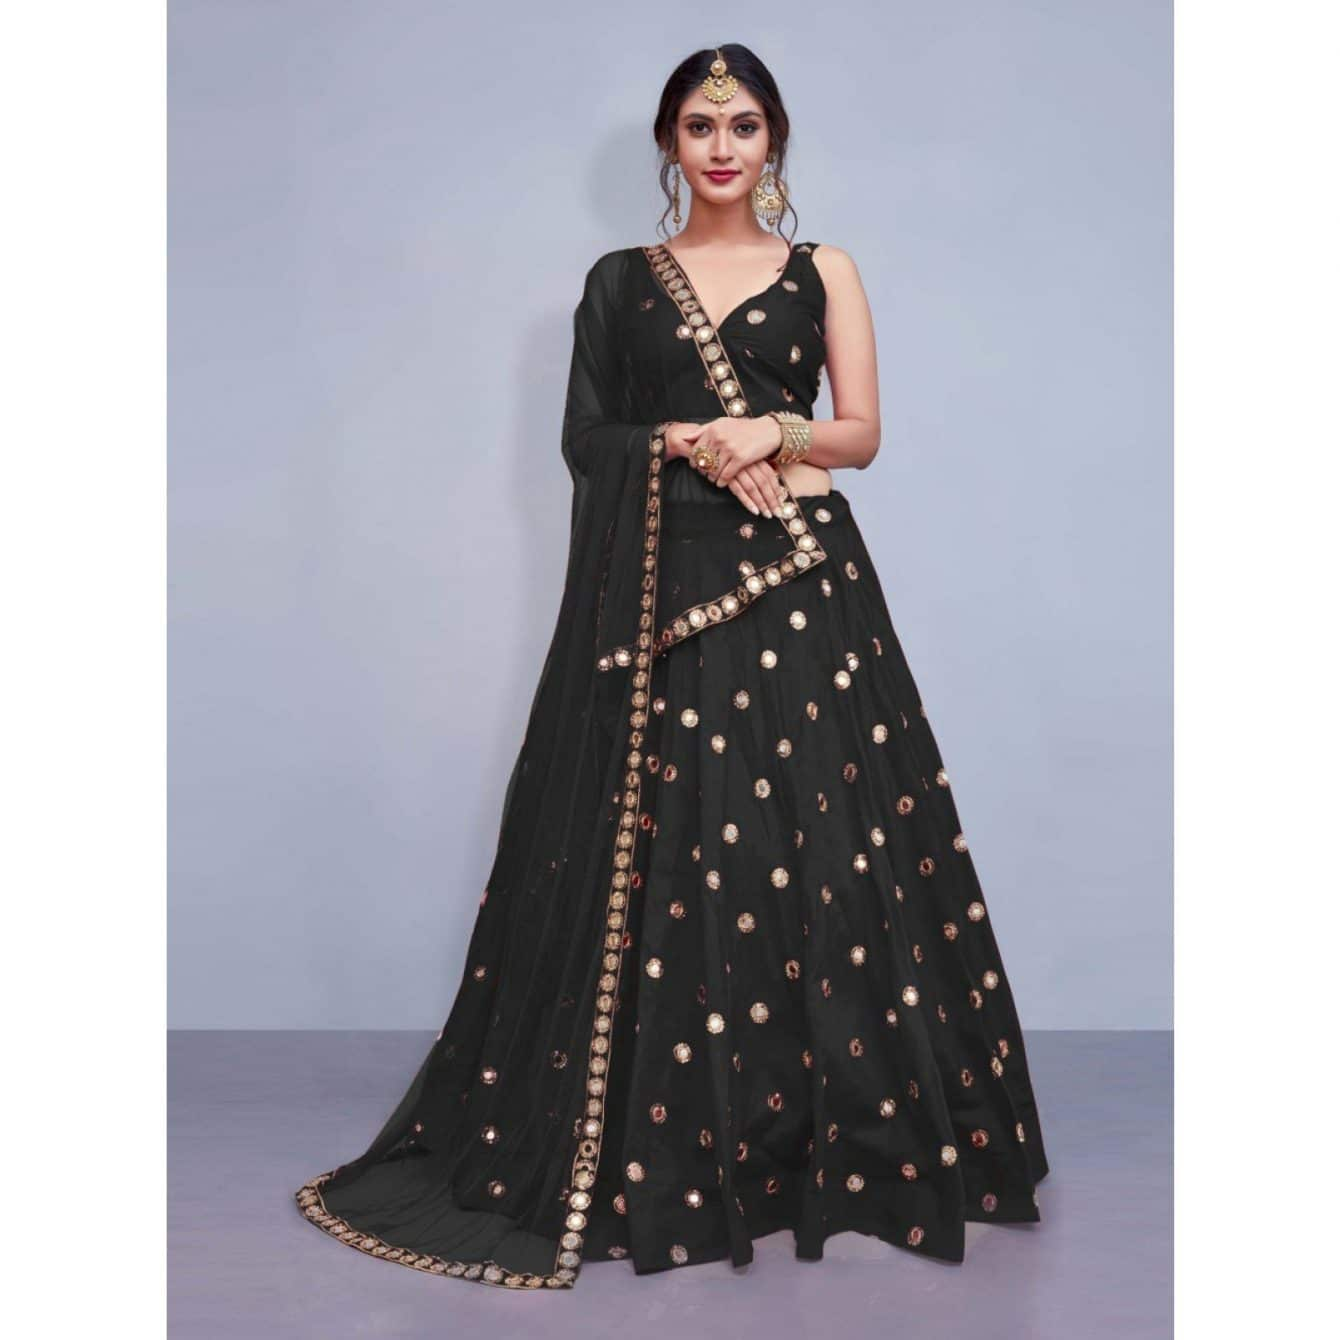 royal black lehenga